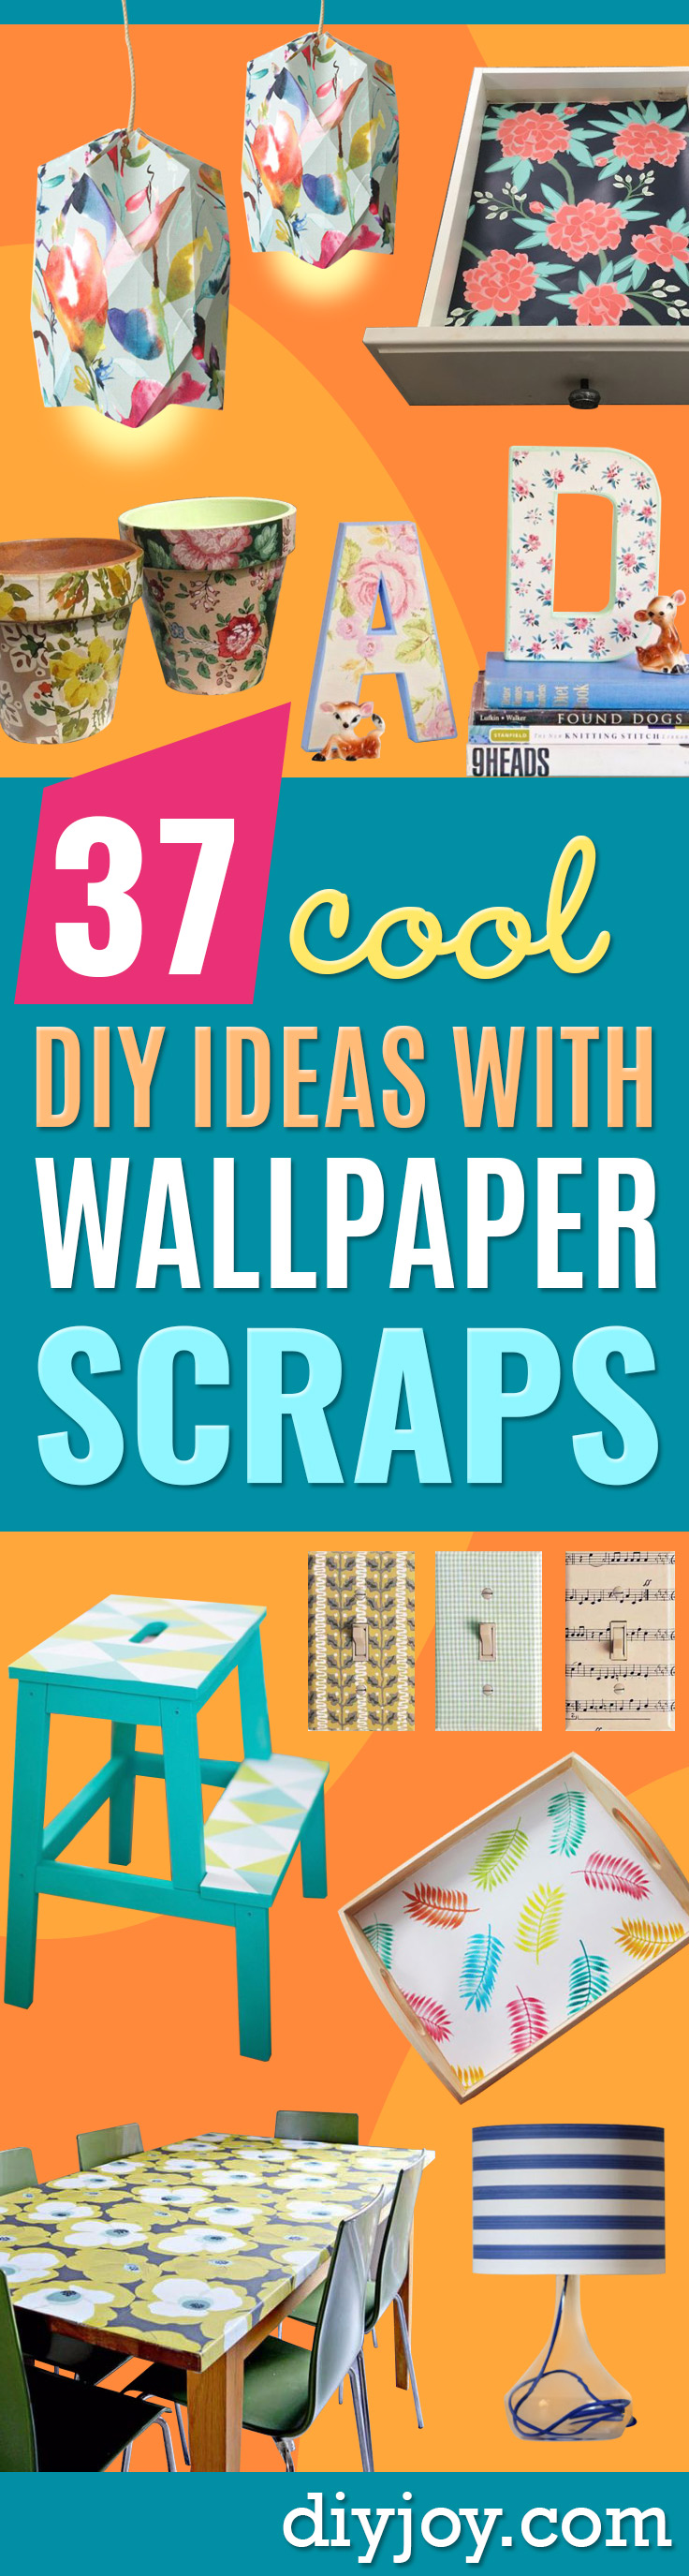 DIY Ideas for Wallpaper Scraps - Cute Projects and Easy DIY Gift Ideas to Make With Leftover Wall Paper - Fun Home Decor, Homemade Wall Art Idea Tutorials, Creative Ways to Use Old Wallpapers - Cool Crafts for Men, Women and Teens http://diyjoy.com/diy-ideas-wallpaper-scraps